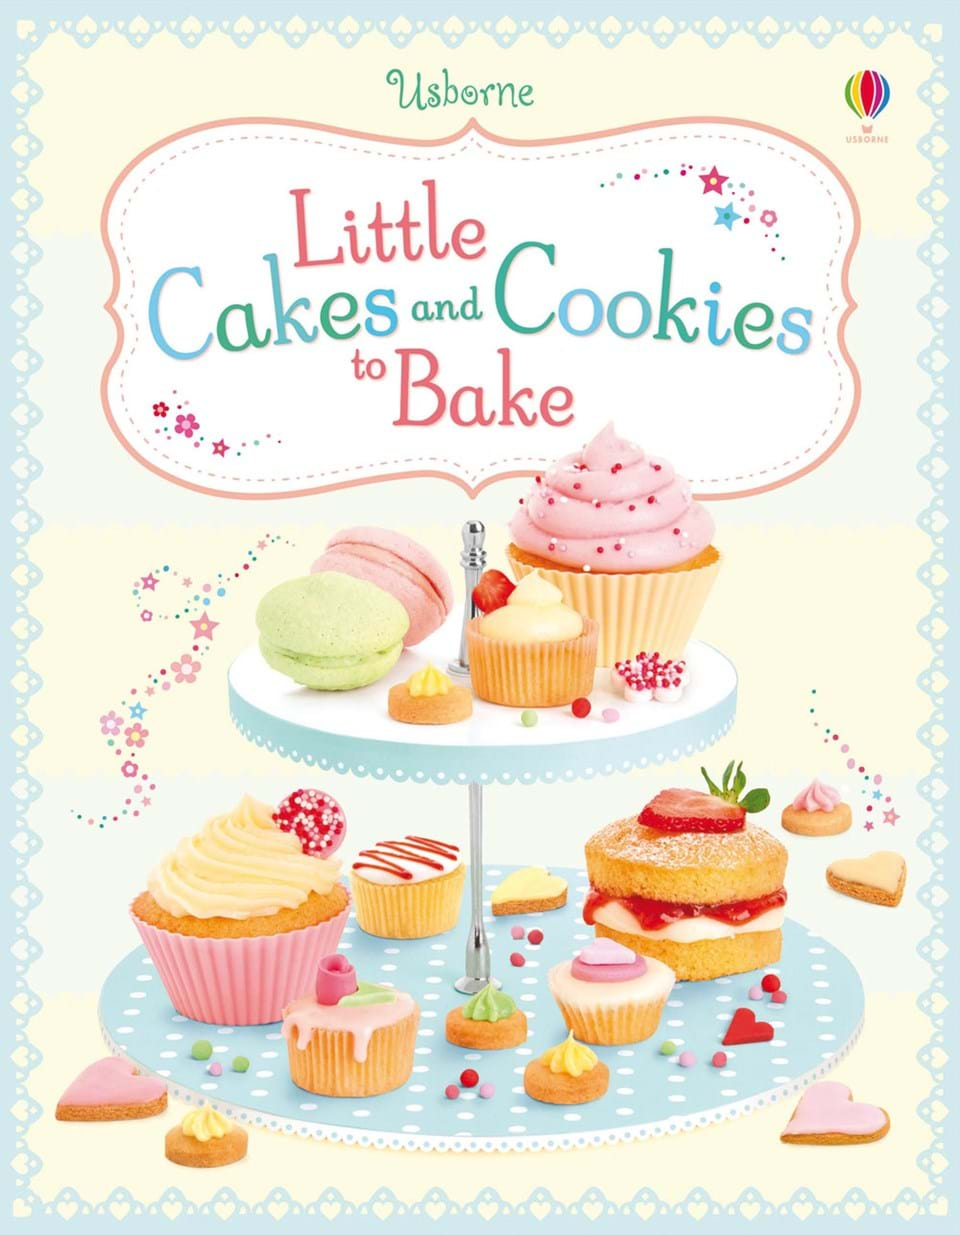 Little Cakes And Cookies To Bake At Usborne Children S Books